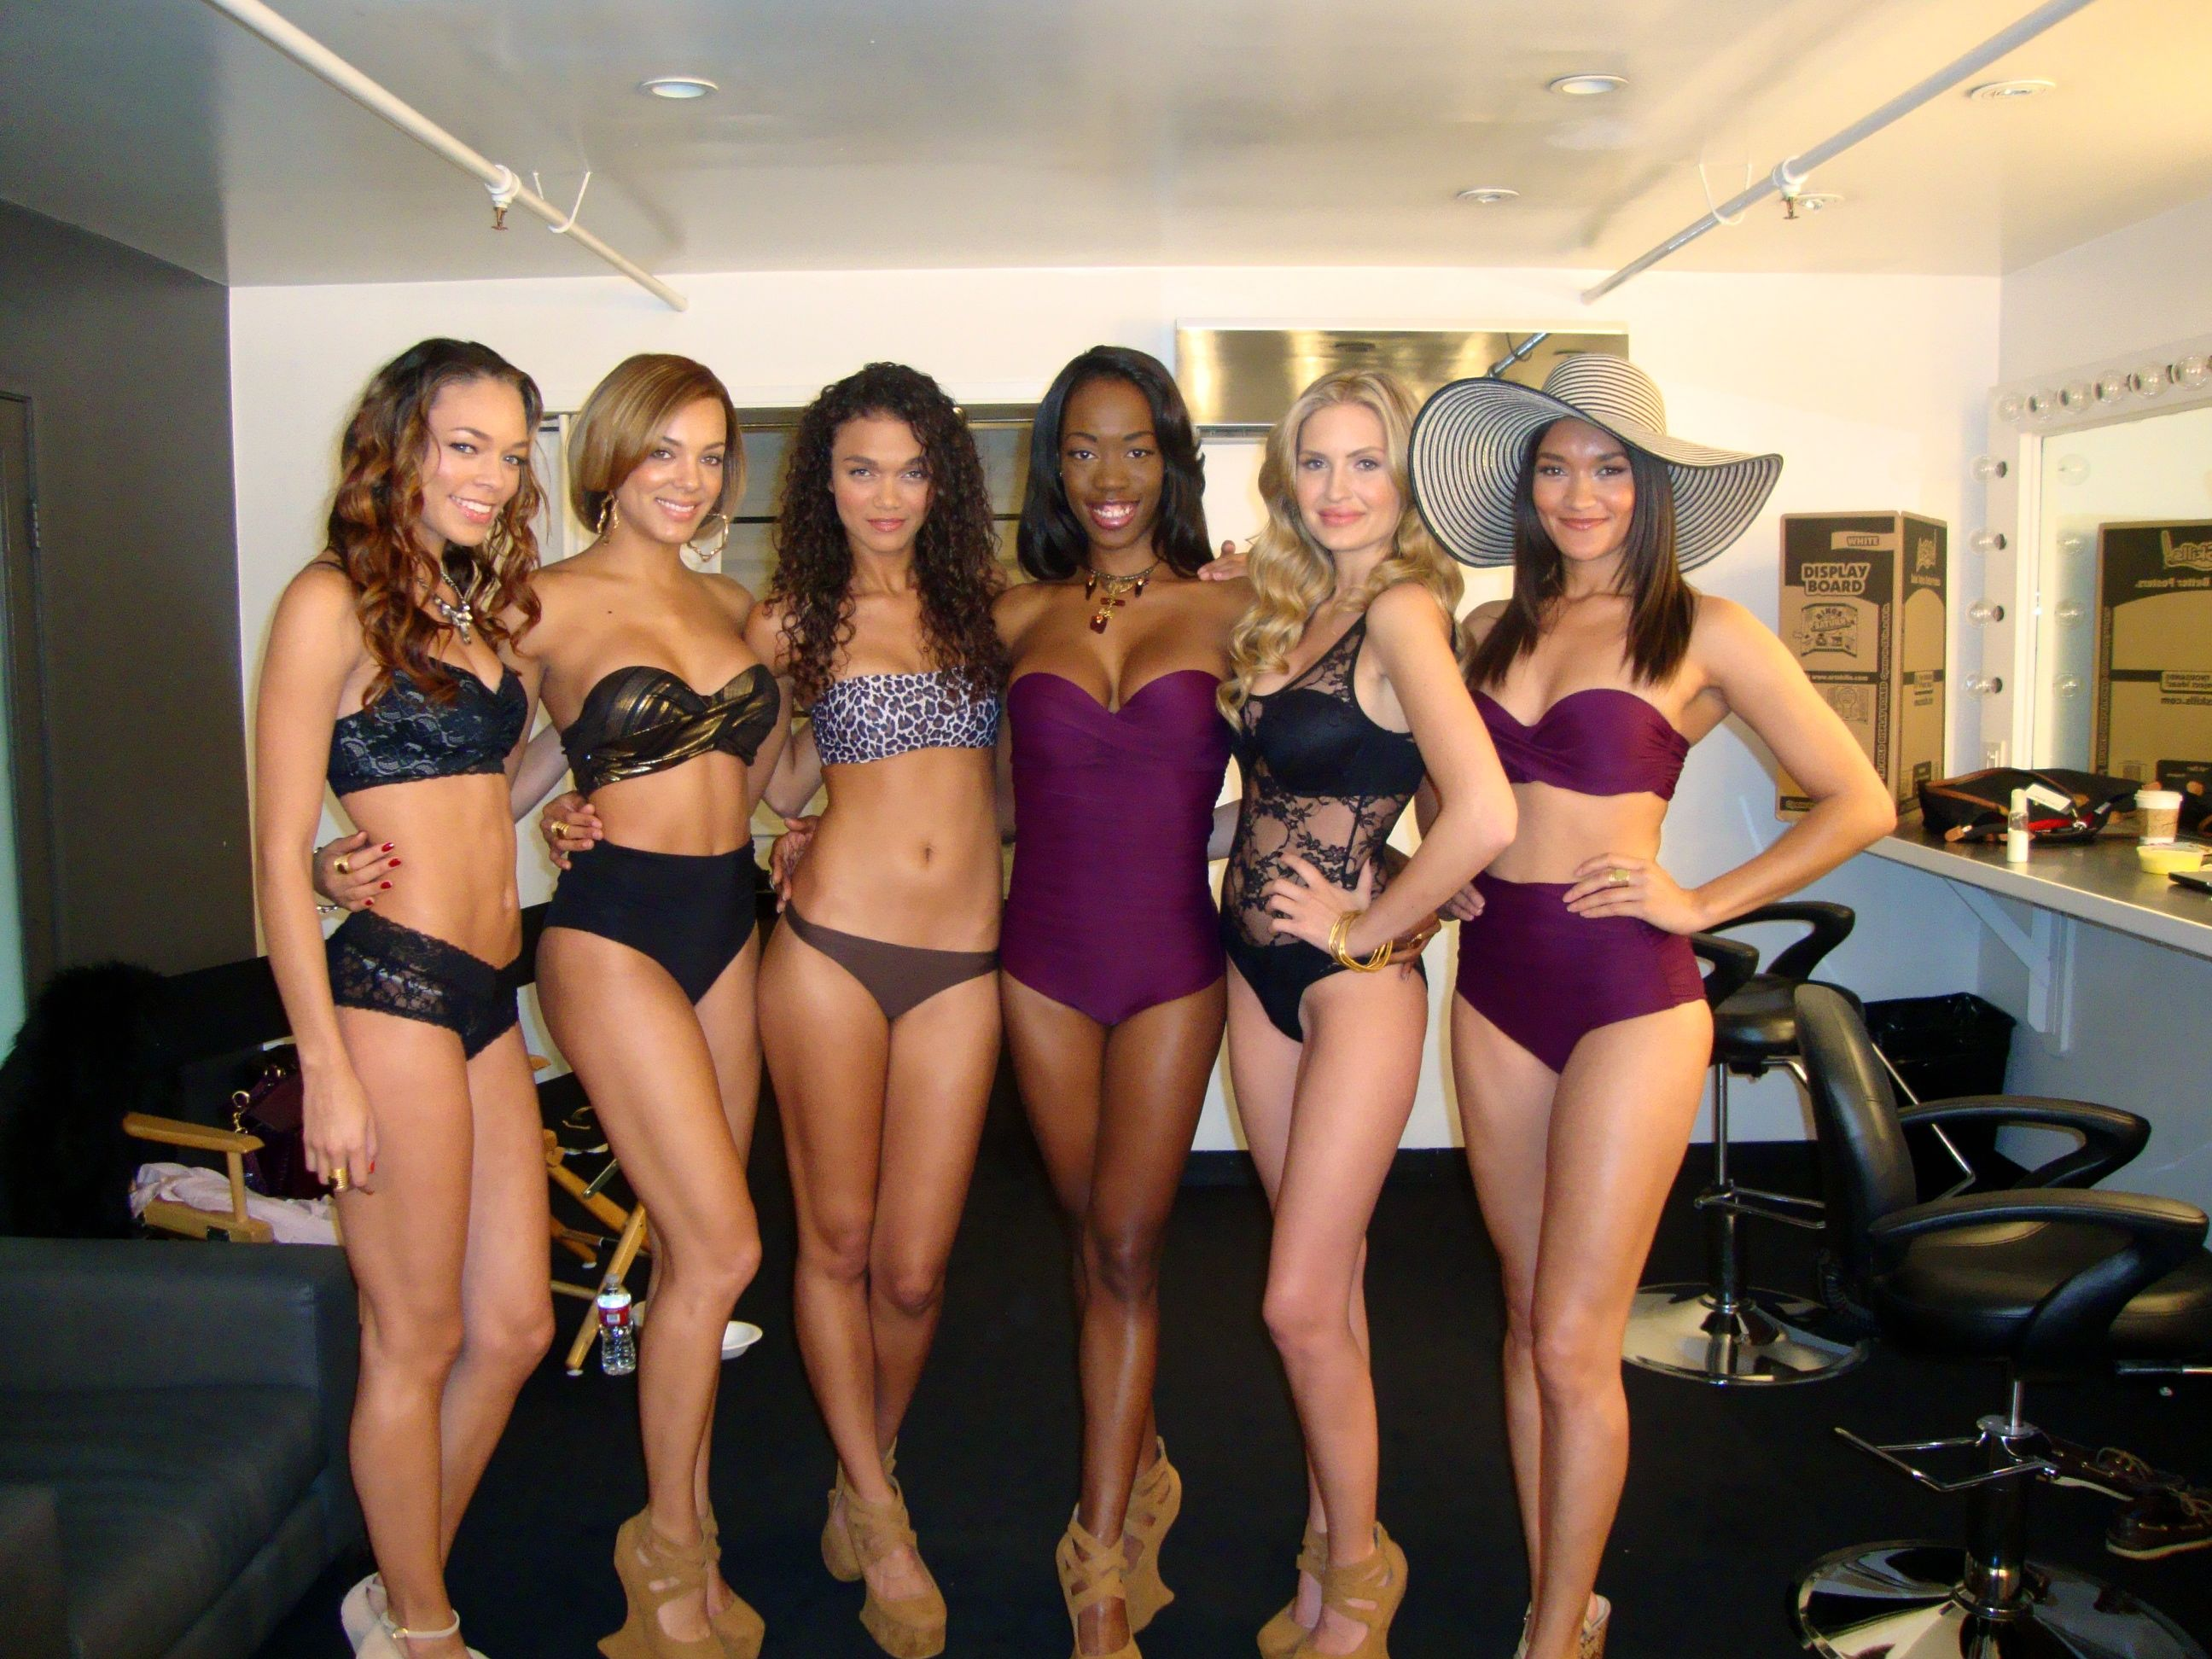 Etalvia with fellow models